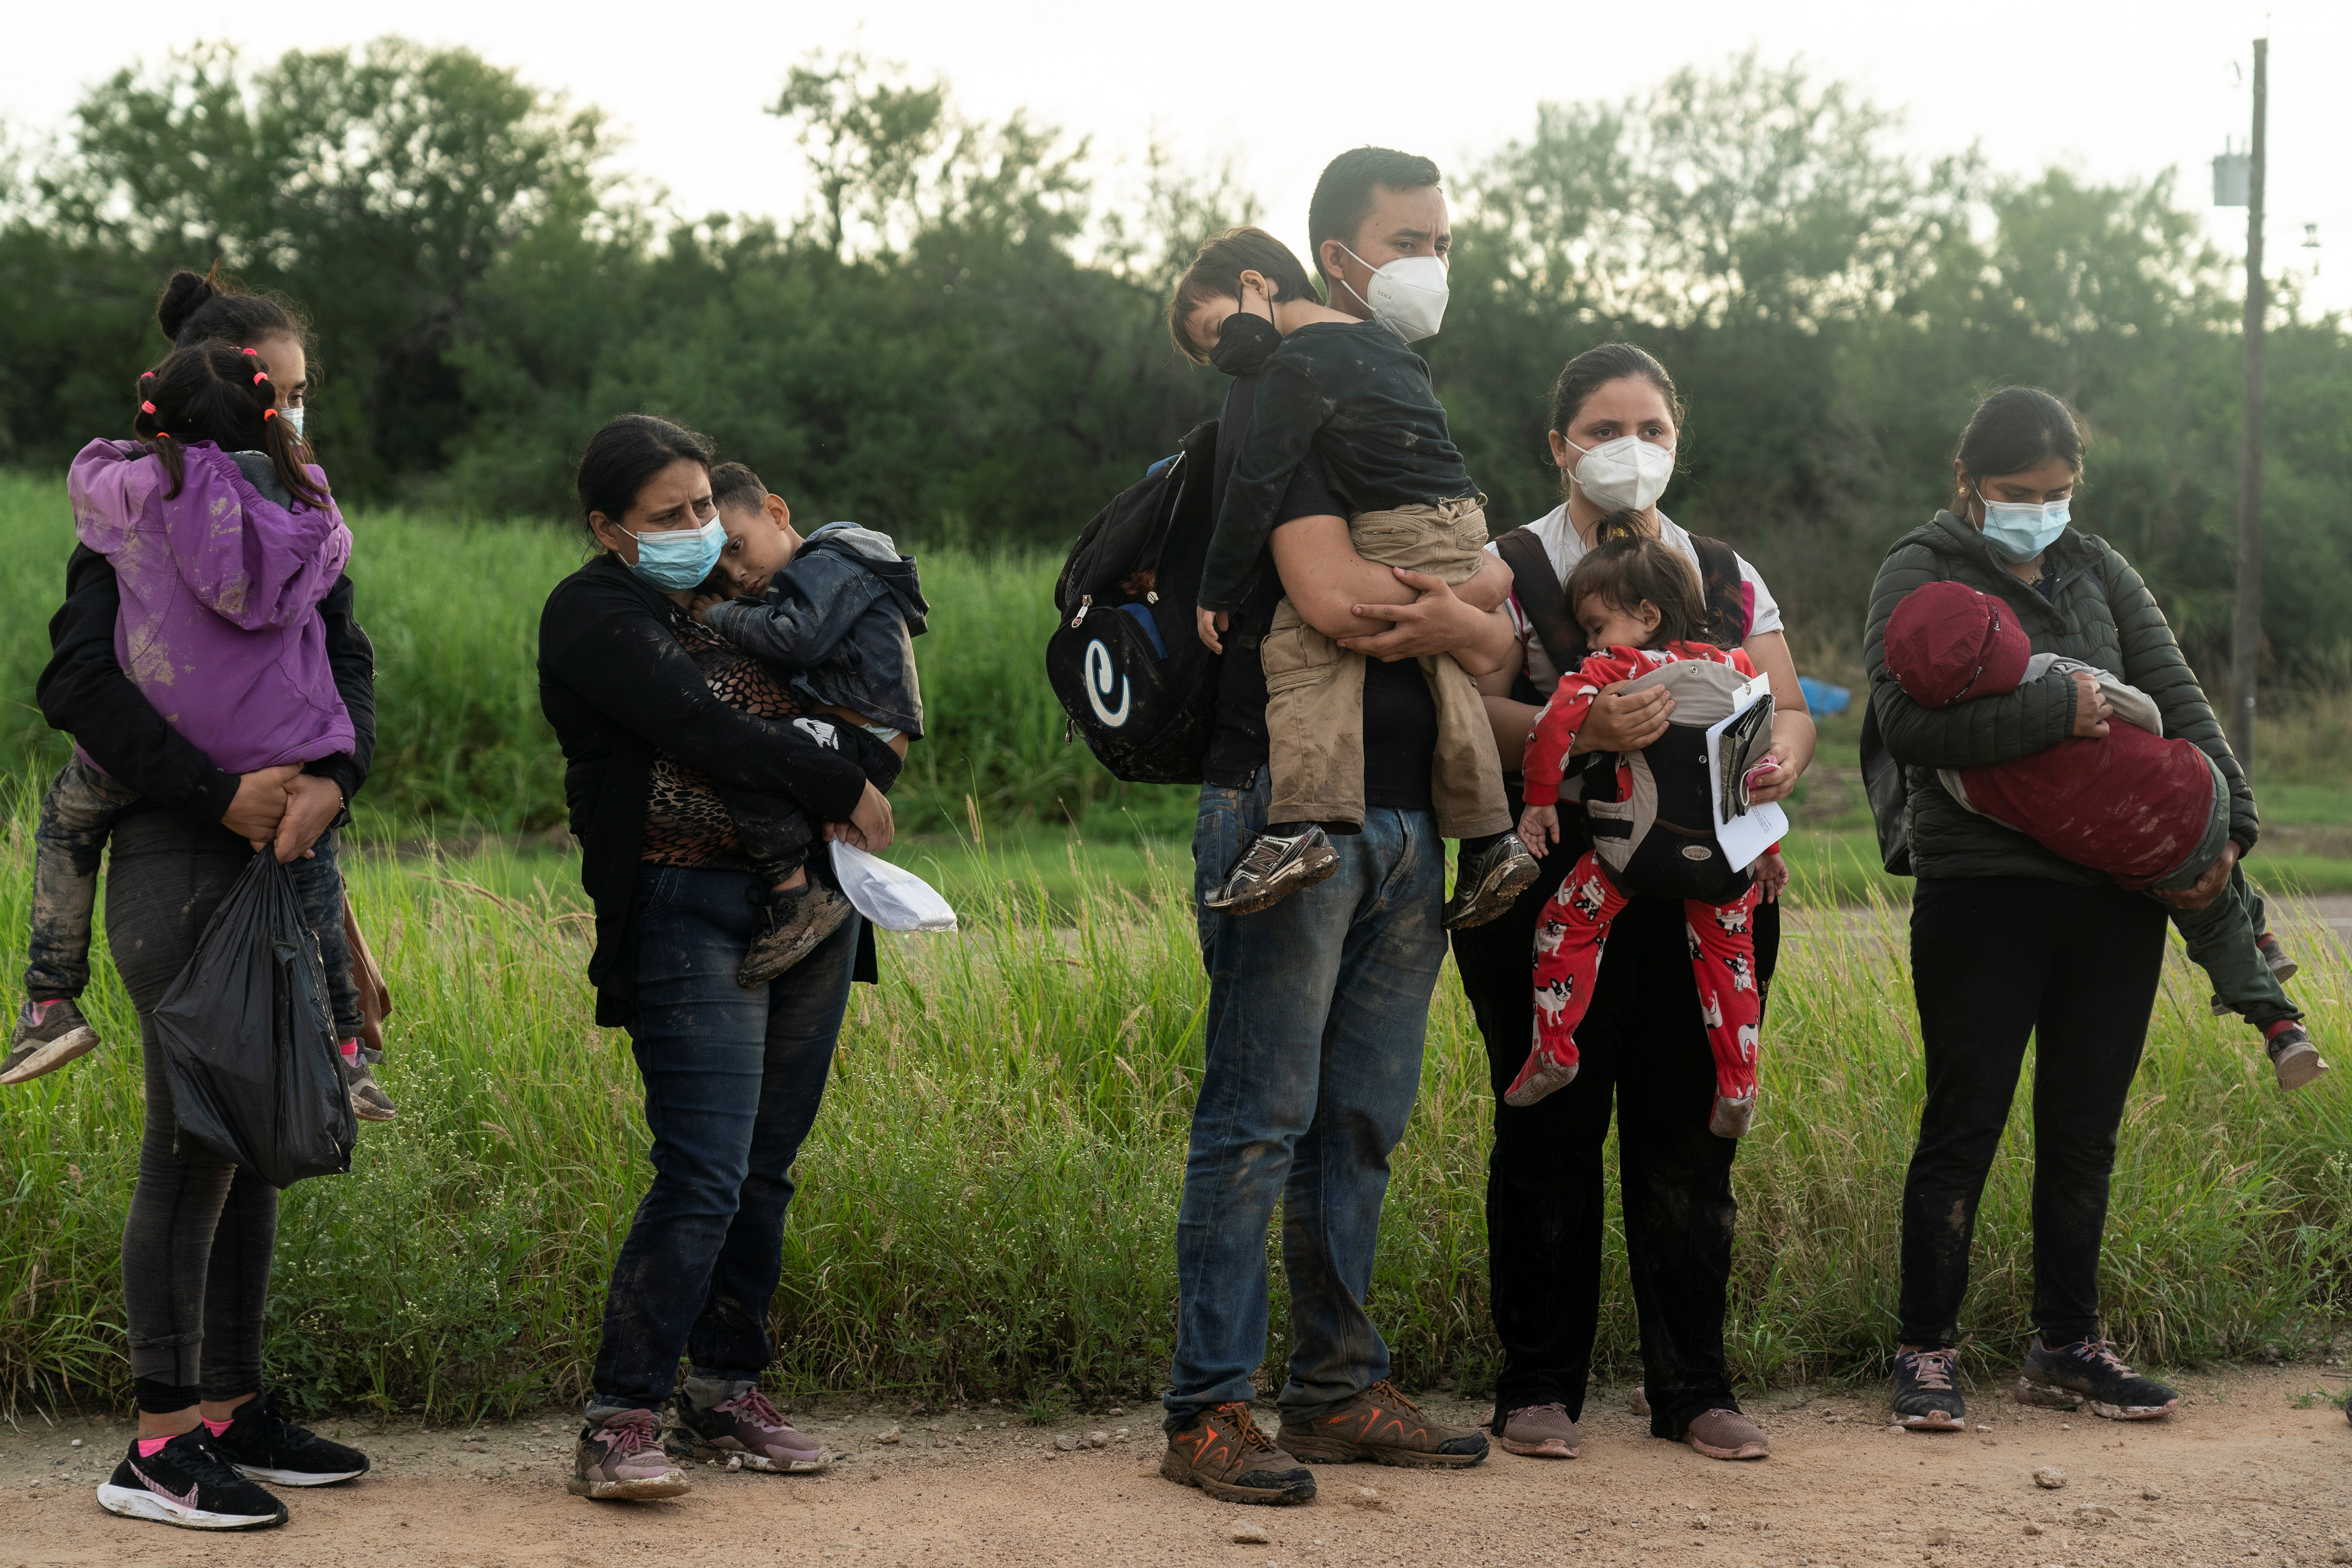 Asylum-seeking migrants' families from Central America wait to be processed by the U.S. Border Patrol agents after crossing the Rio Grande river into the United States from Mexico, in Penitas, Texas, U.S., July 8, 2021. REUTERS/Go Nakamura